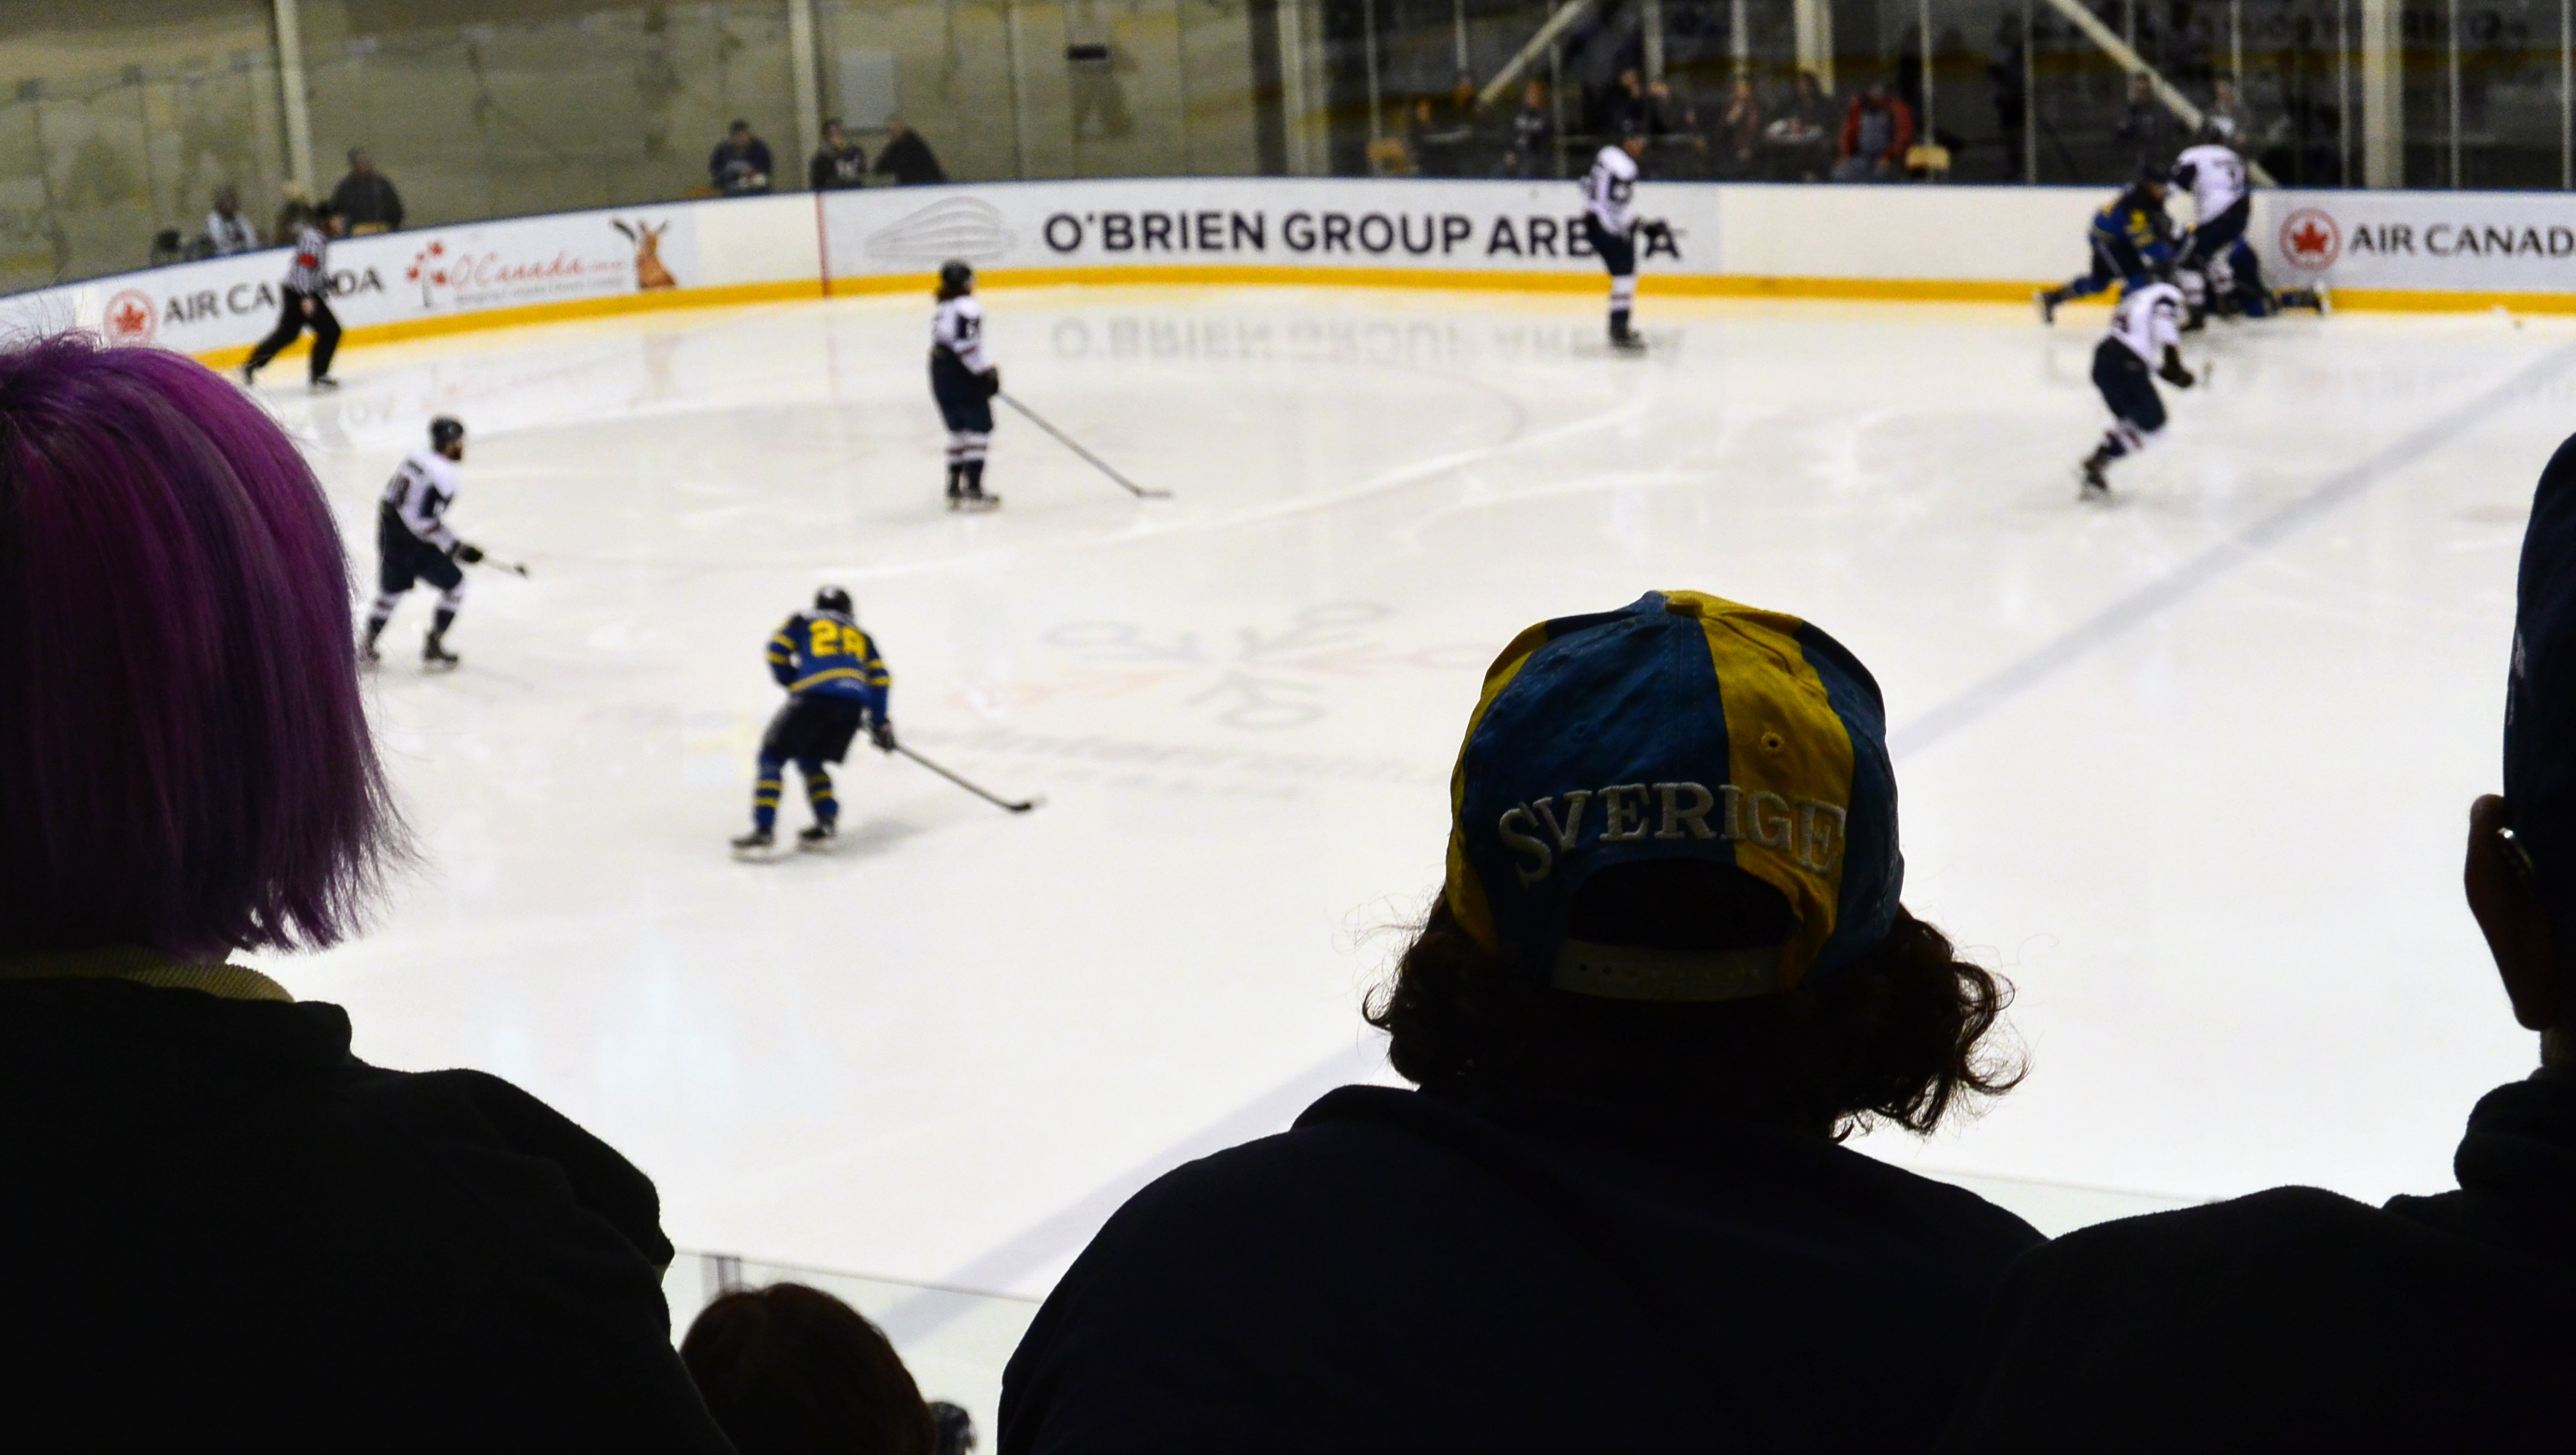 Swedish Day at the Ice Hockey in Melbourne